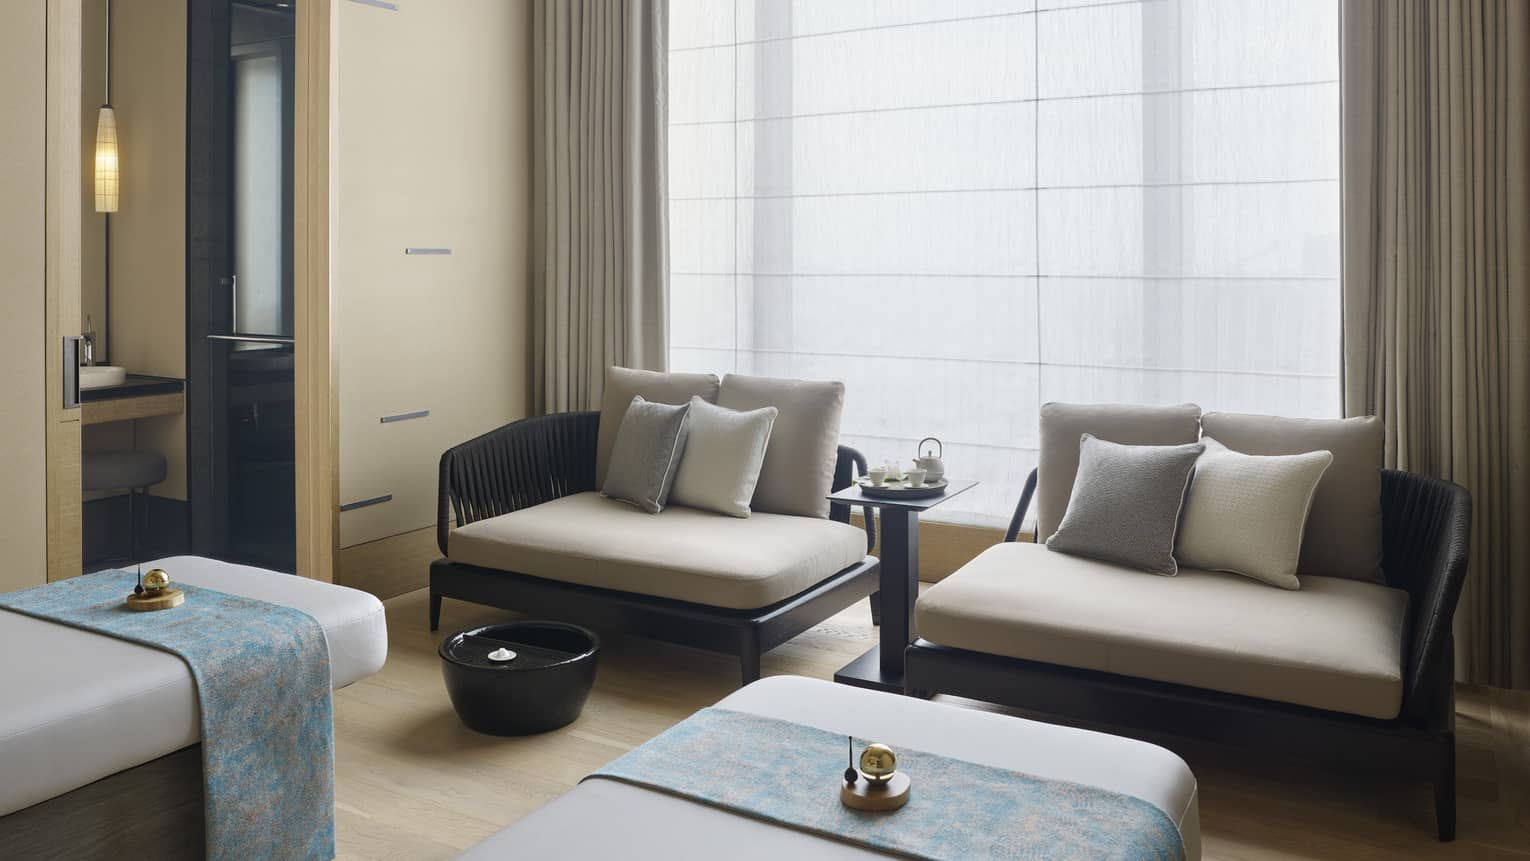 Couples Treatment Room, two spa treatment beds and small sofas under tall window